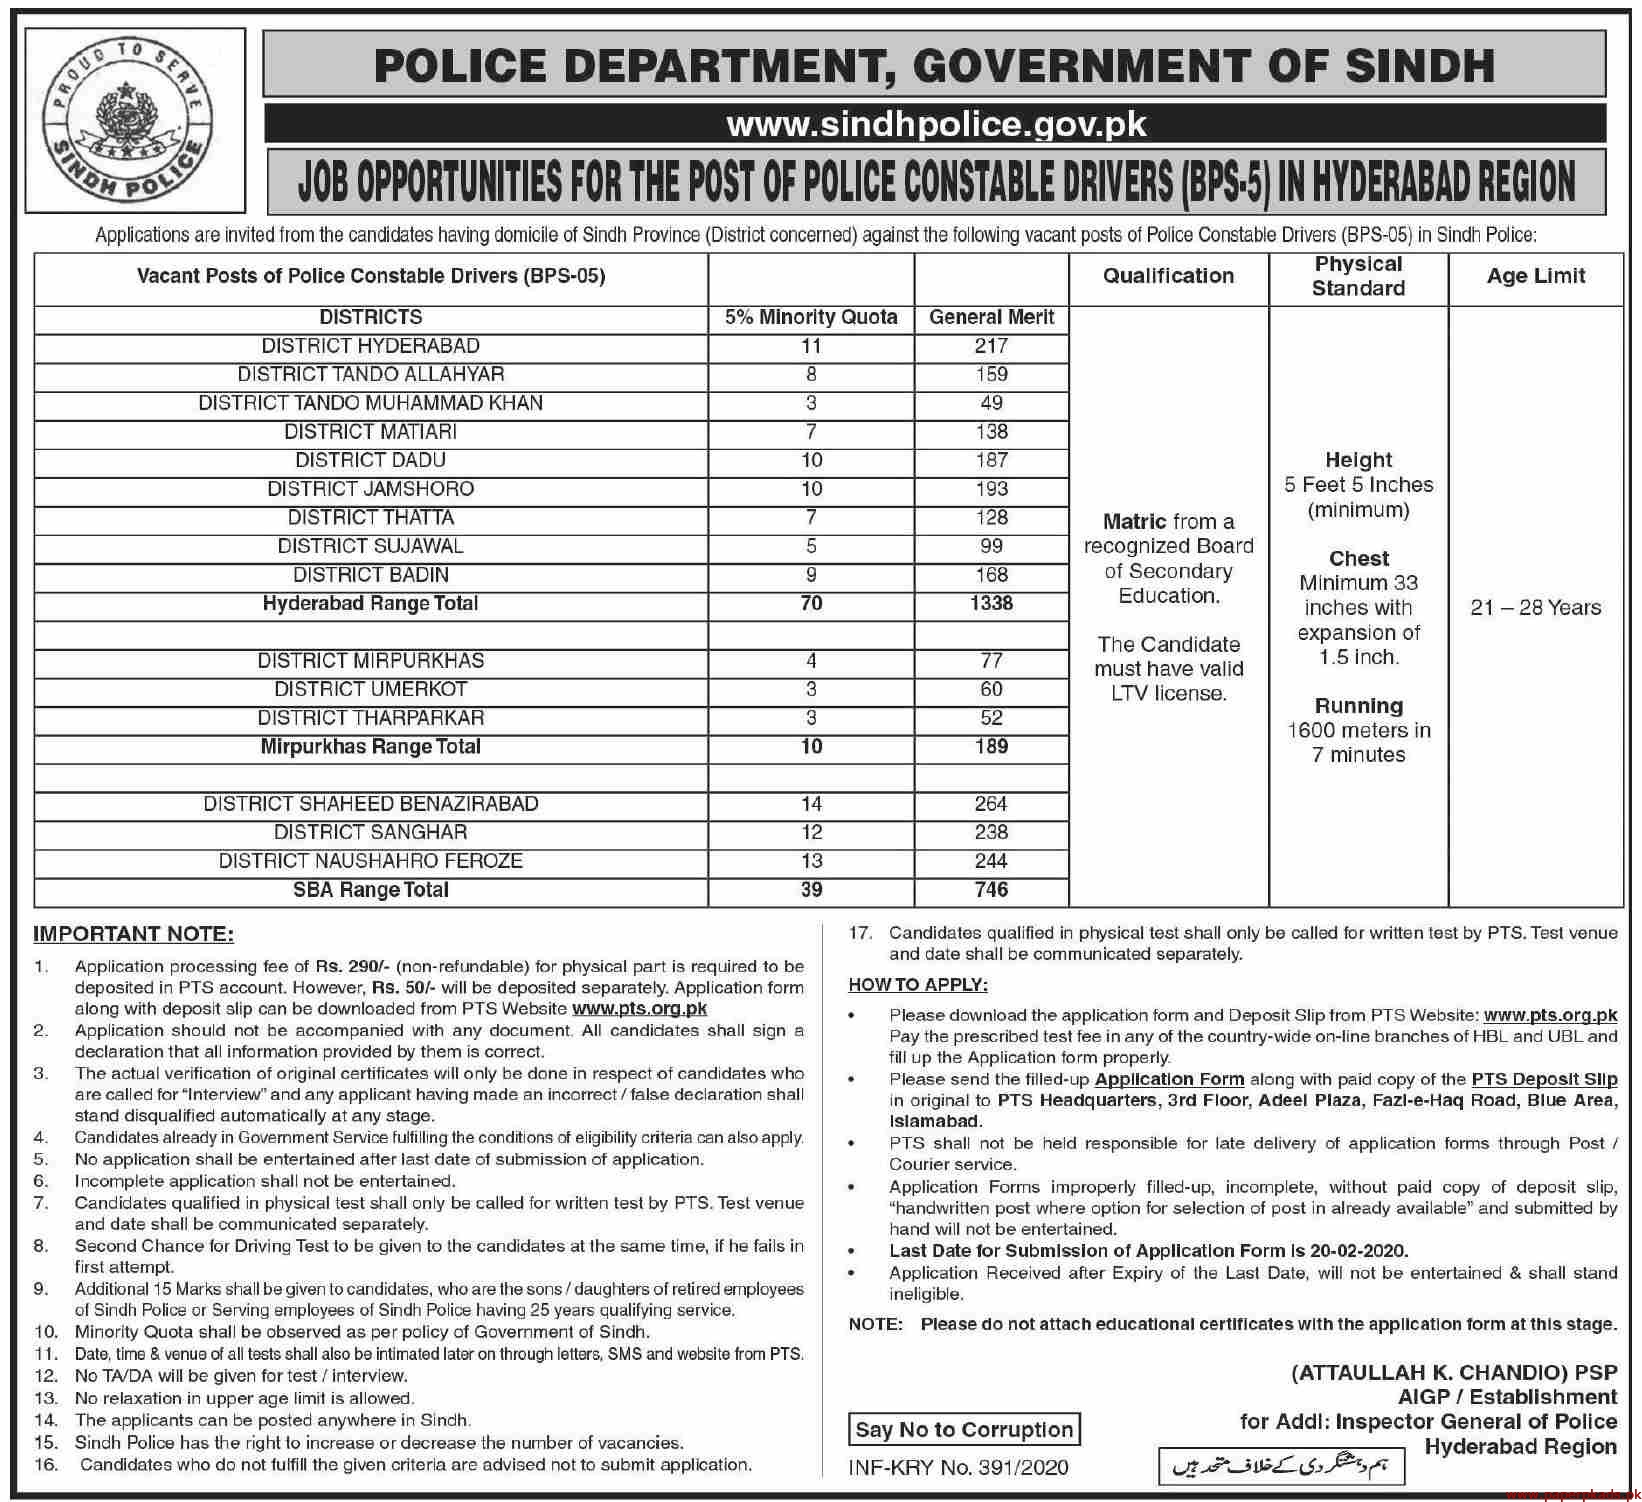 Police Department Government of Sindh Hyderabad Jobs 2020 Latest